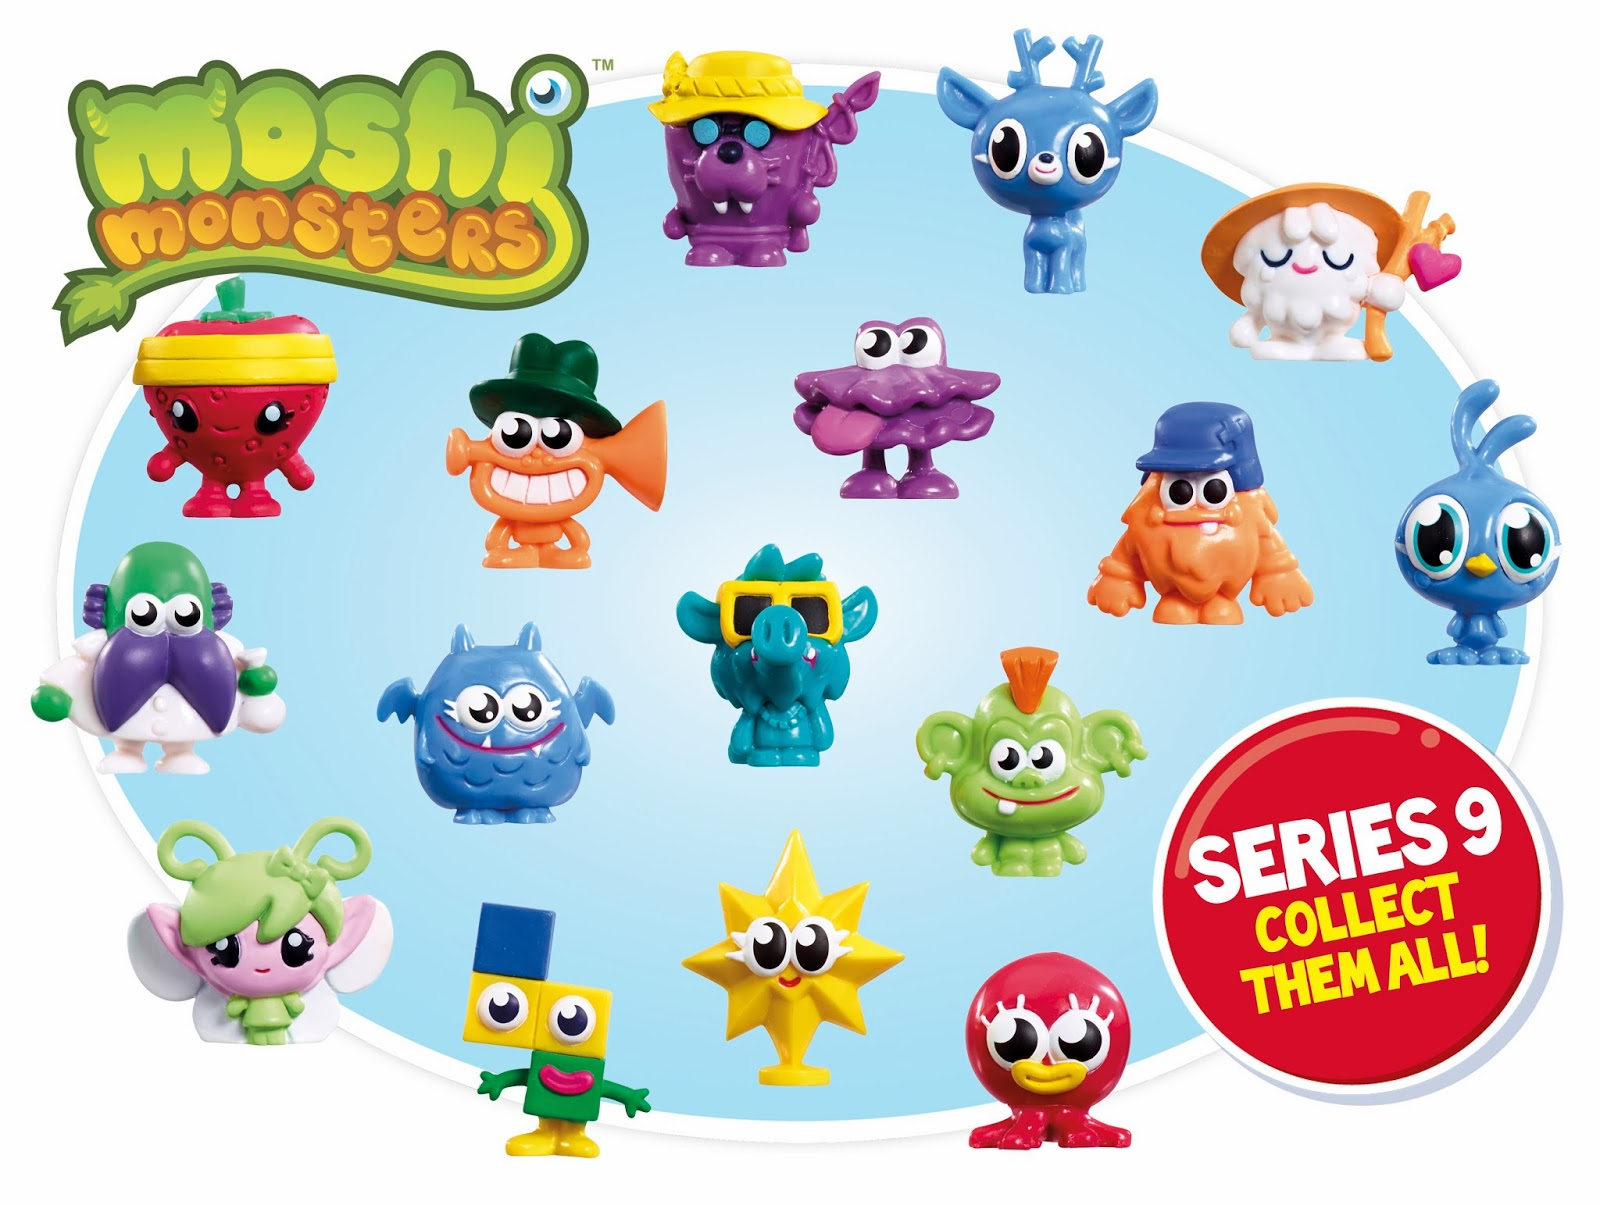 Moshi Monsters Series 9 Figures, Moshi Monsters Competition, Win a set of moshlings